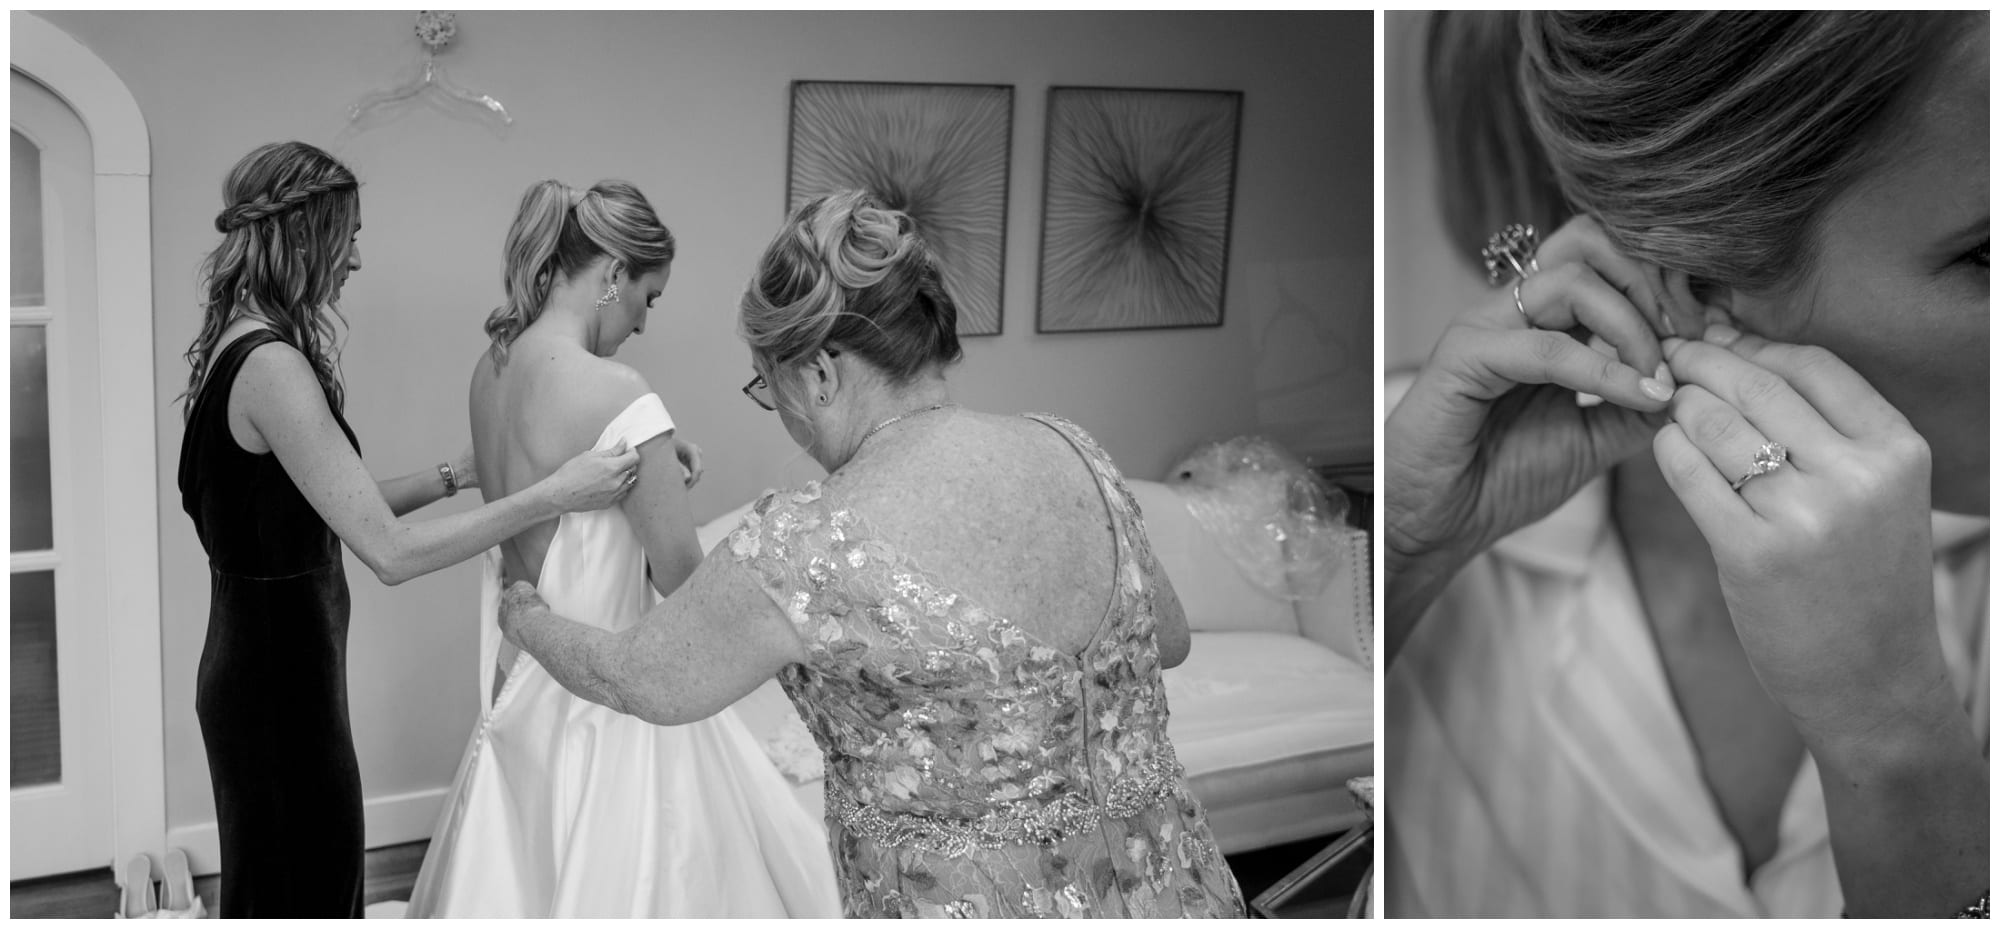 mom and sister help bride into dress